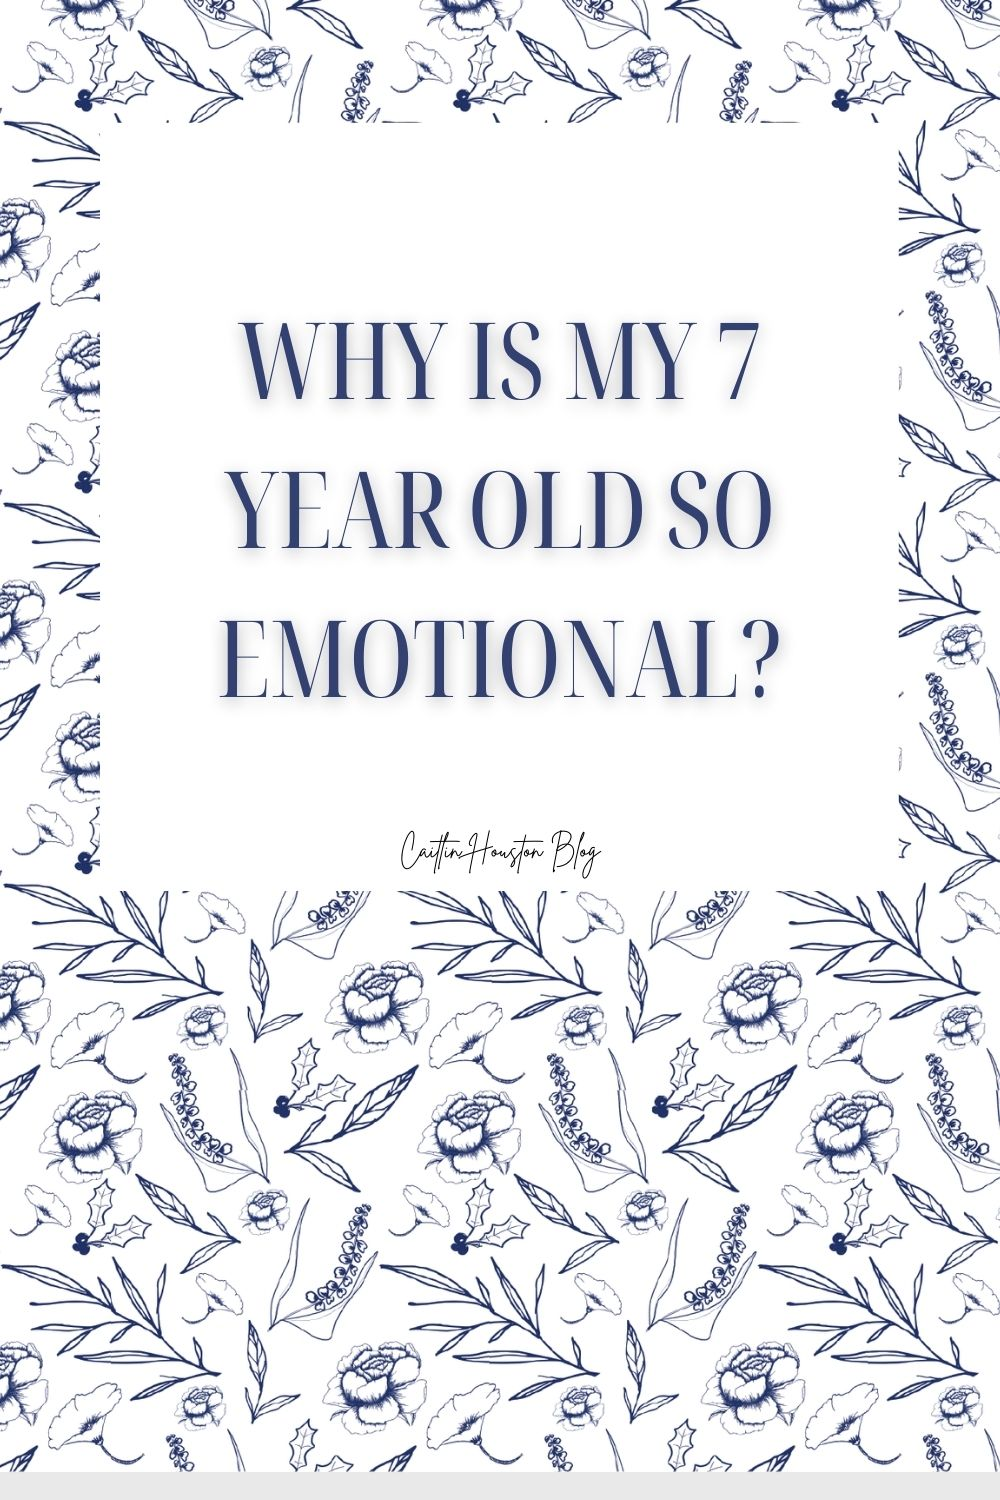 Why is my 7 year old so emotional?